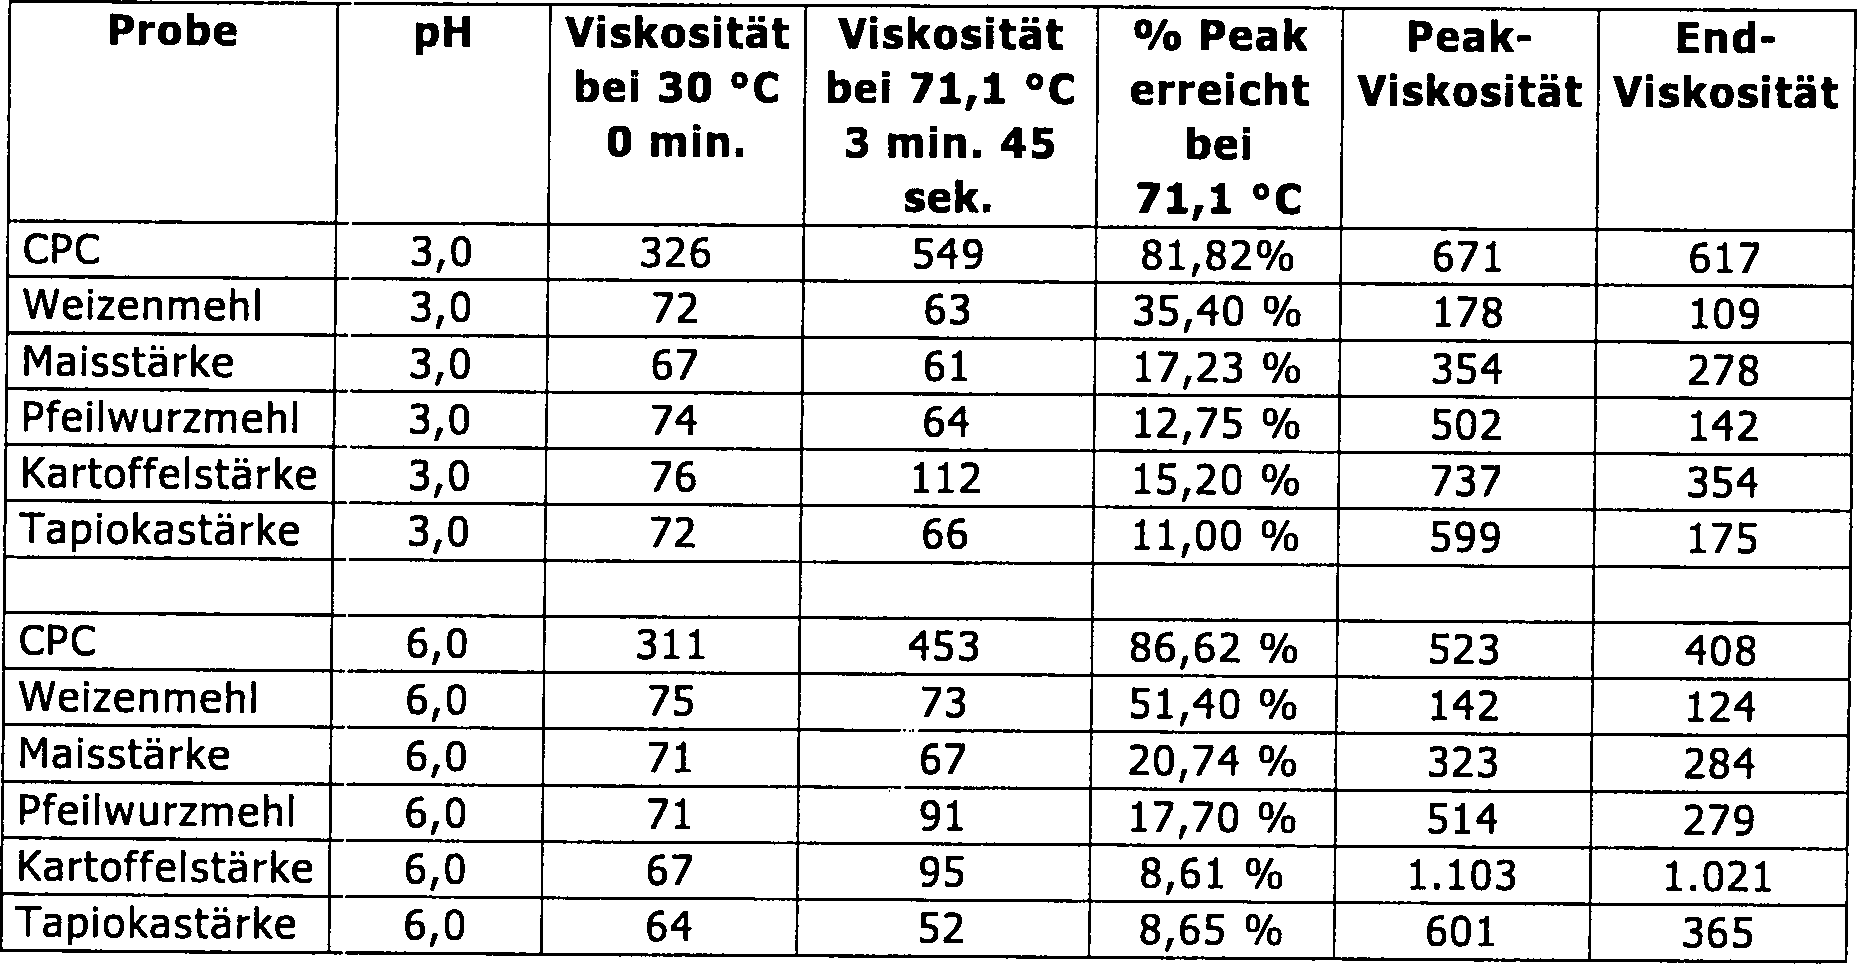 Viskosität Cp Mpas De60211985t2 Treated Mixture Containing Modified Starch And Flour